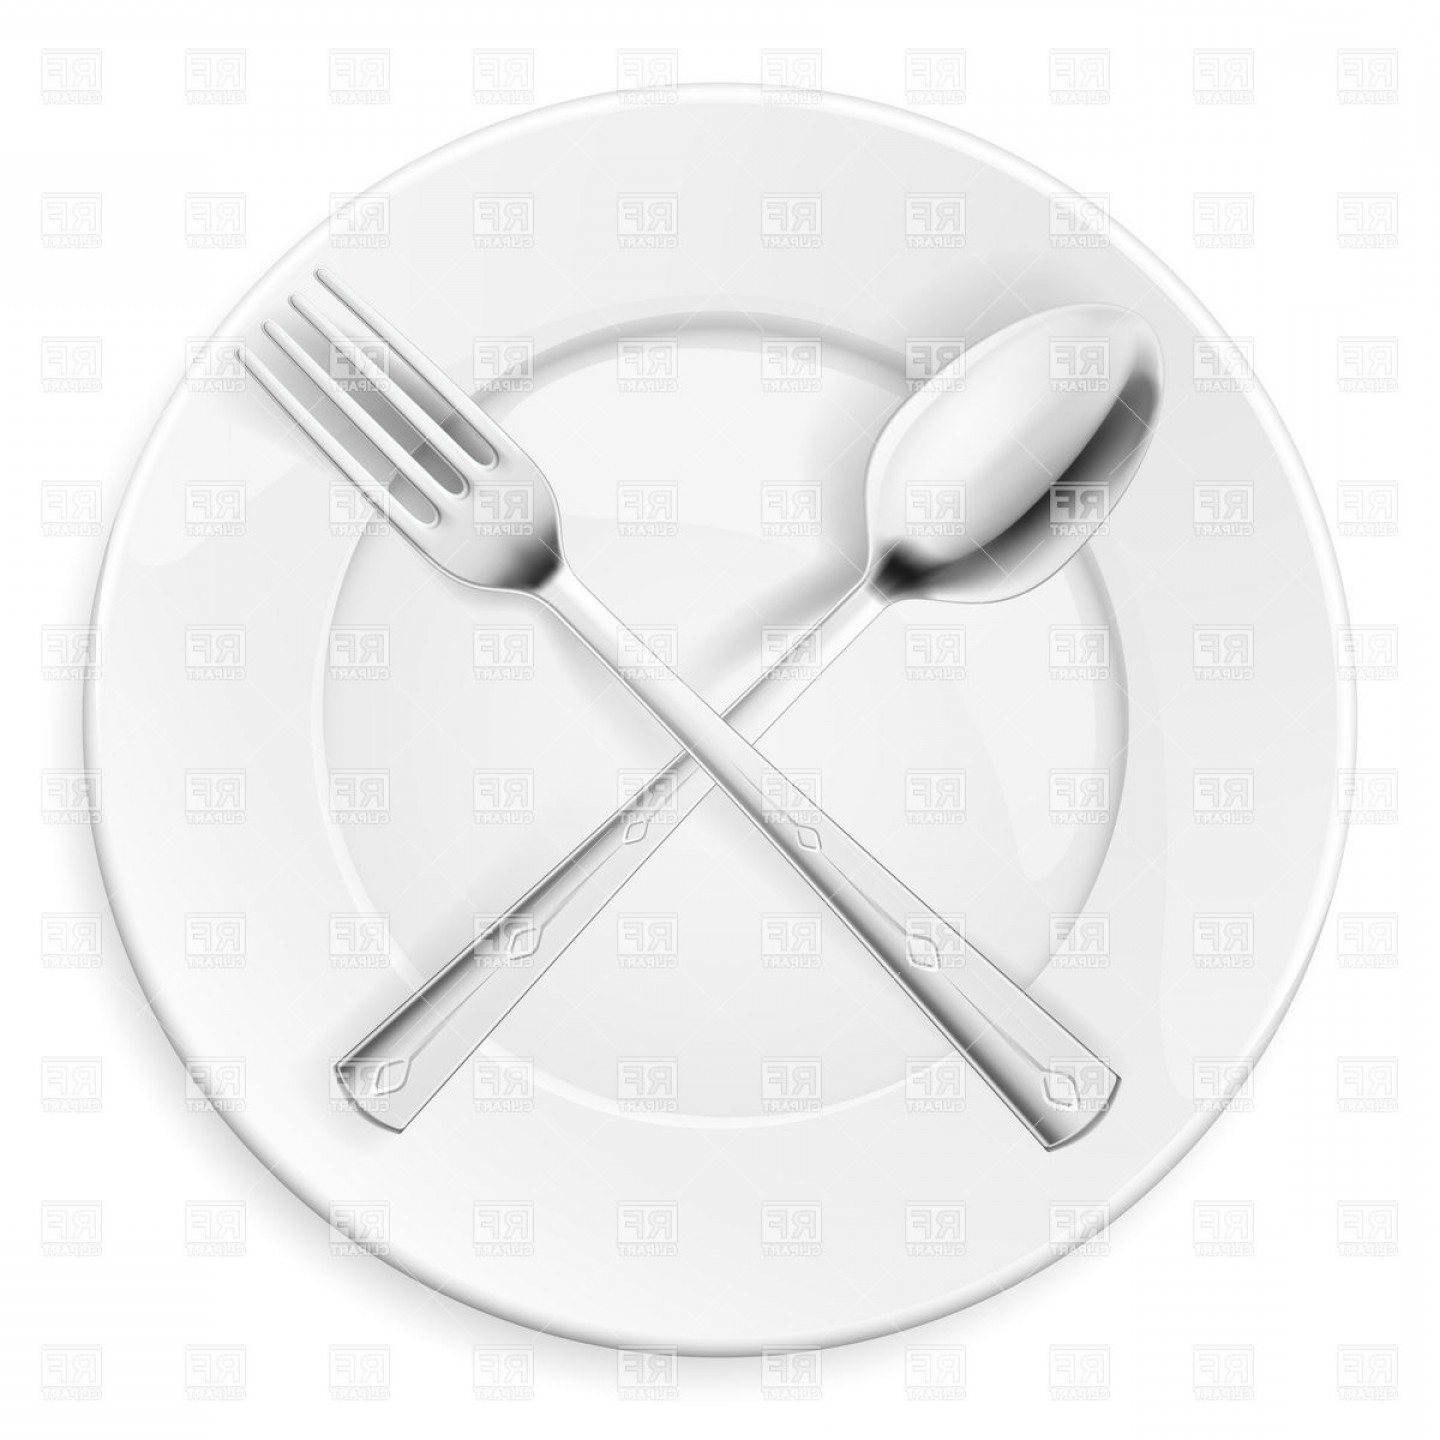 Plate and silverware clipart banner black and white Crossed Spoon And Fork Over Plate Vector Clipart   SOIDERGI banner black and white